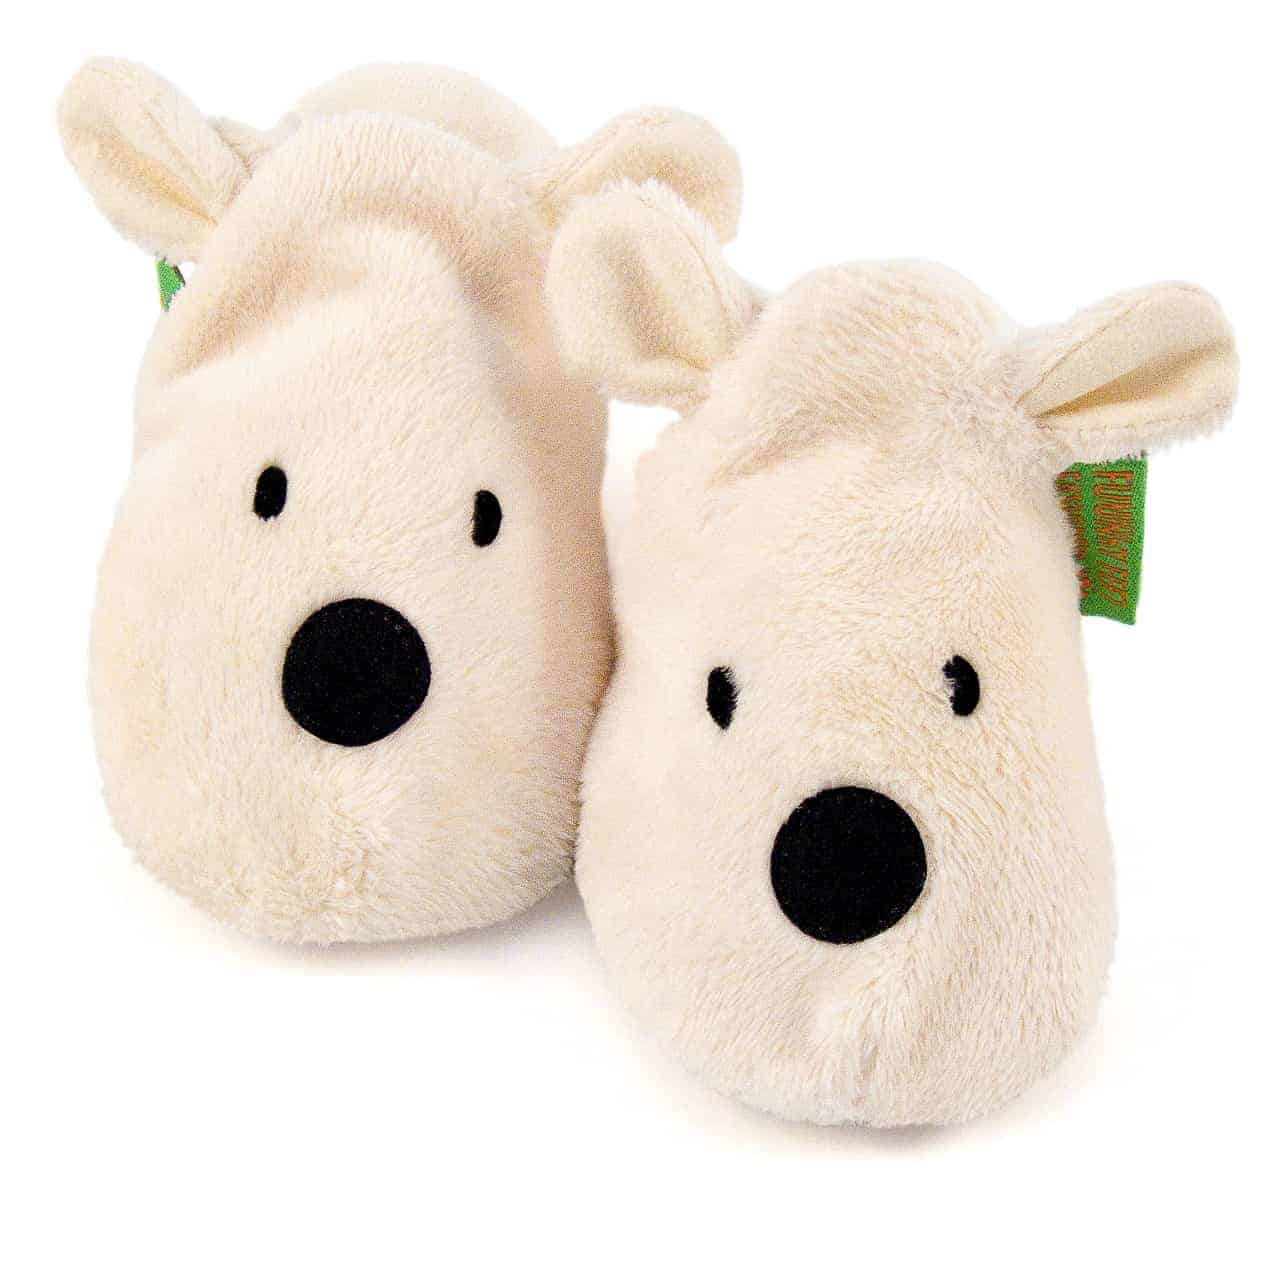 Adorable BabyBoots 6-12 Month Baby Puppy Doggy Slippers